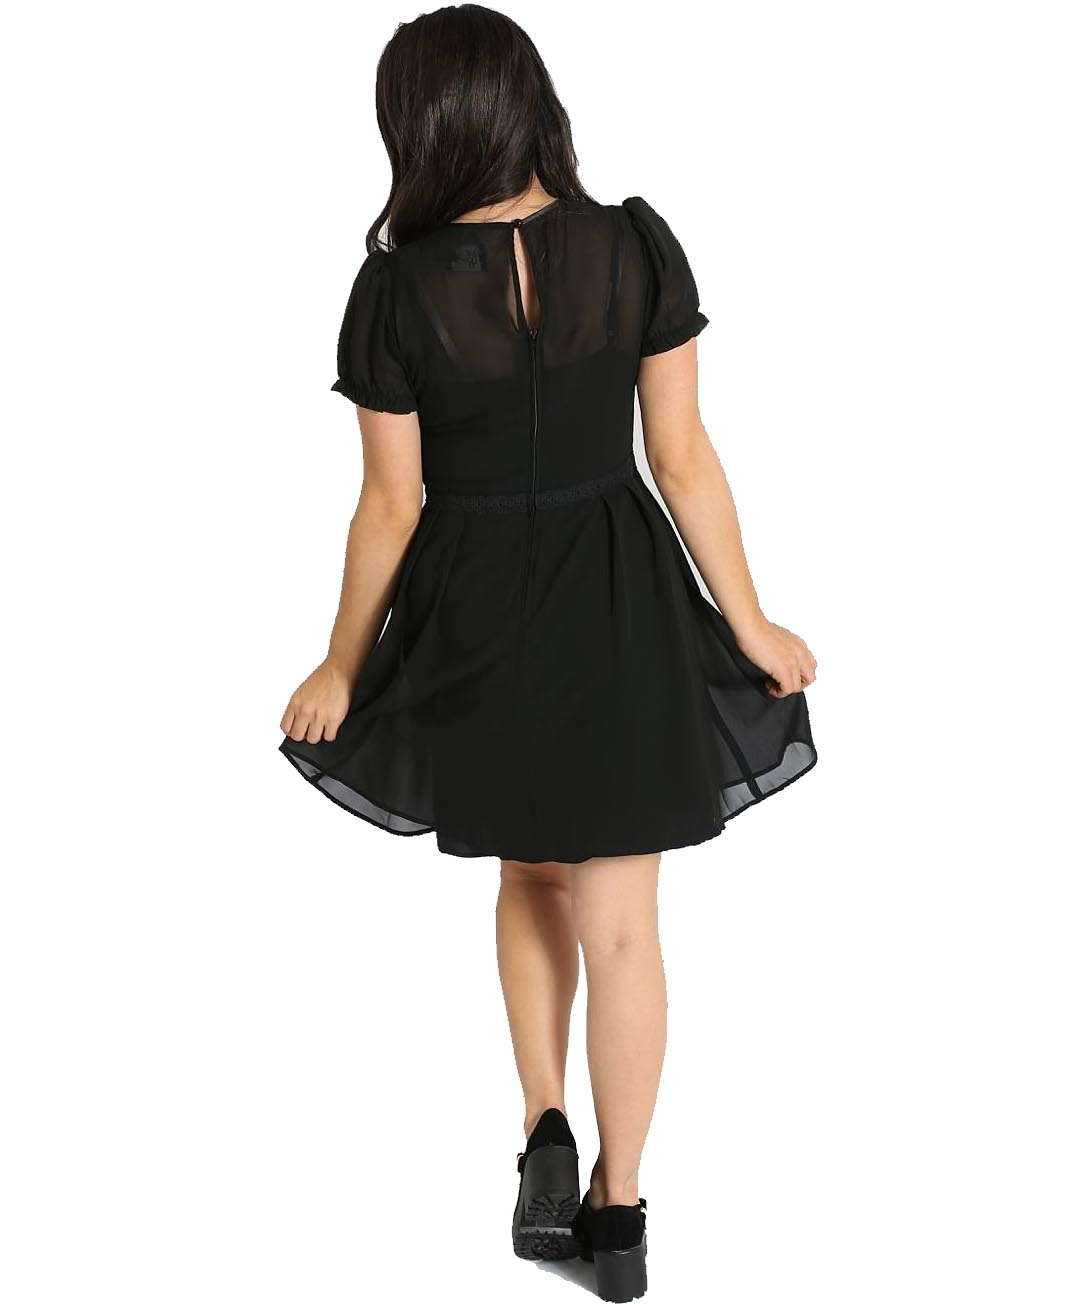 Hell-Bunny-Gothic-Black-Floaty-Mini-Dress-ARIA-Pussy-Bow-All-Sizes thumbnail 13